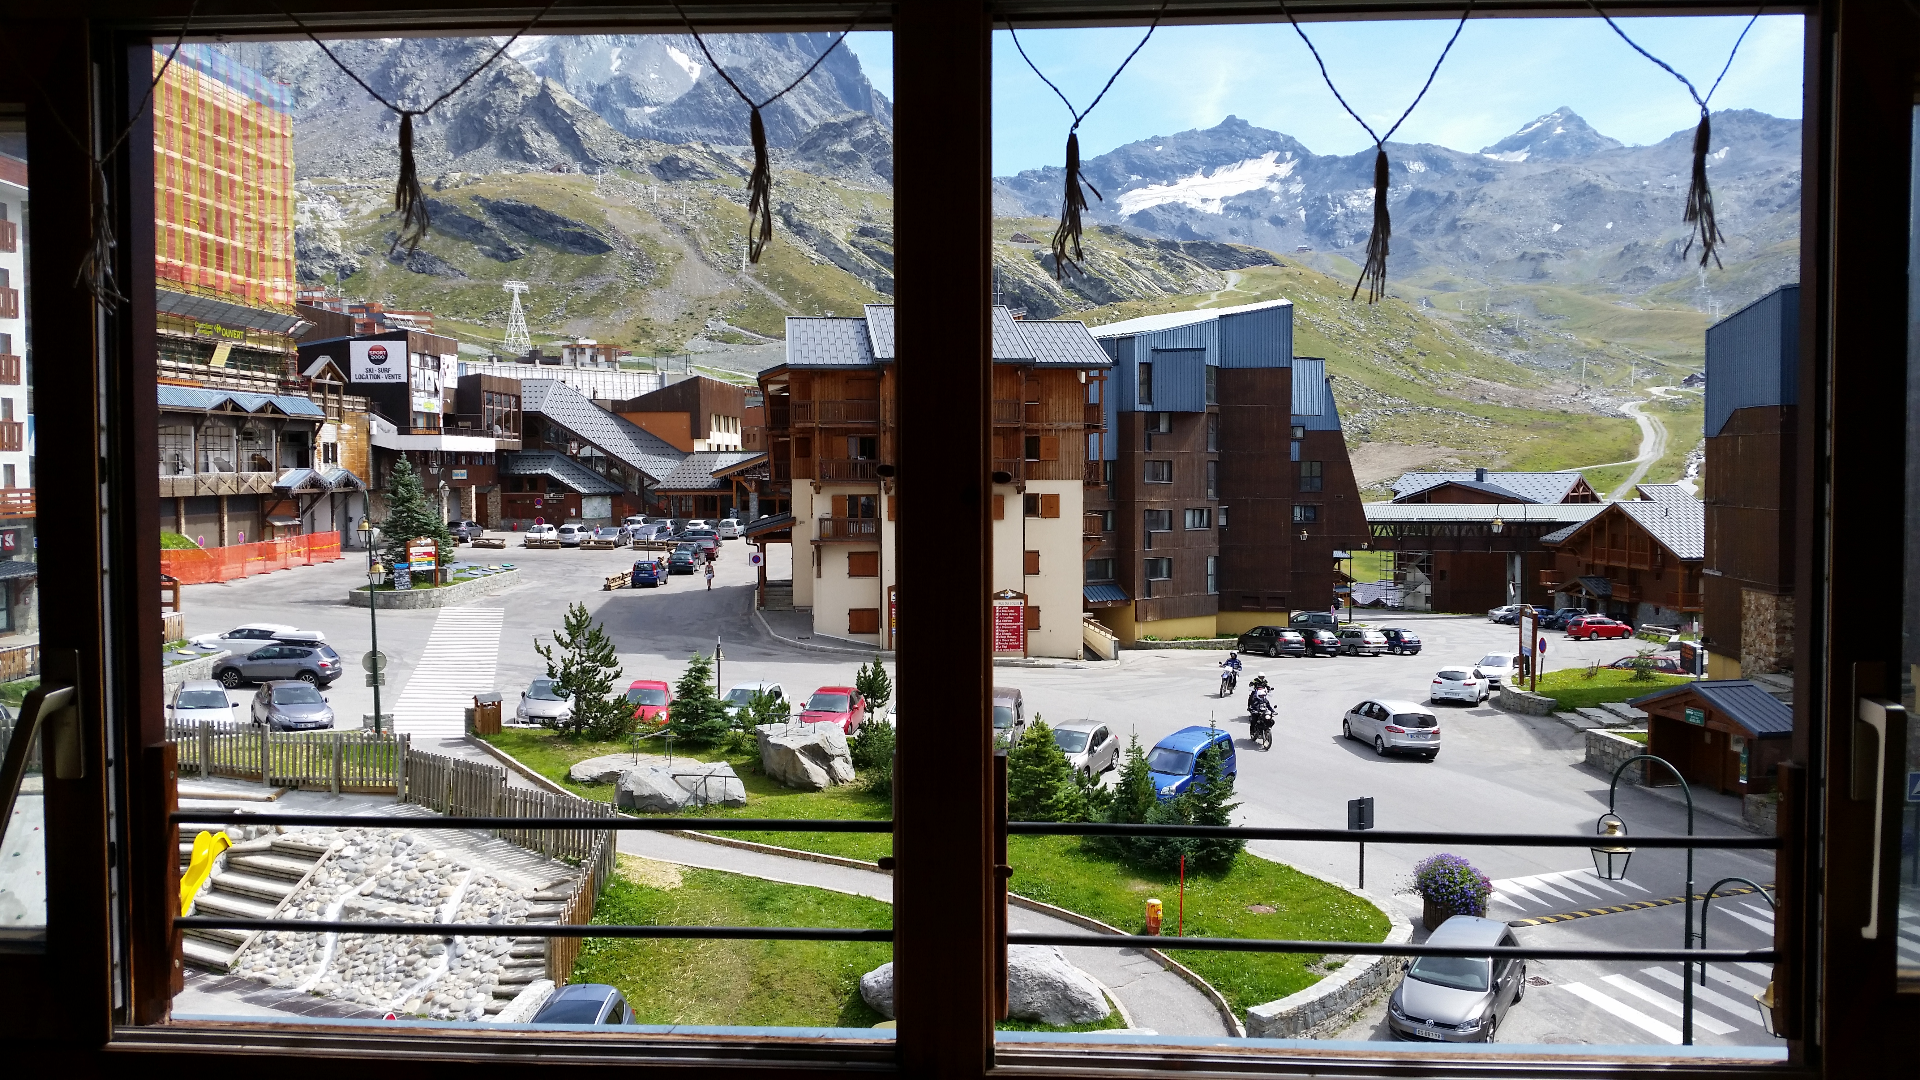 View from Windows onto Main Square